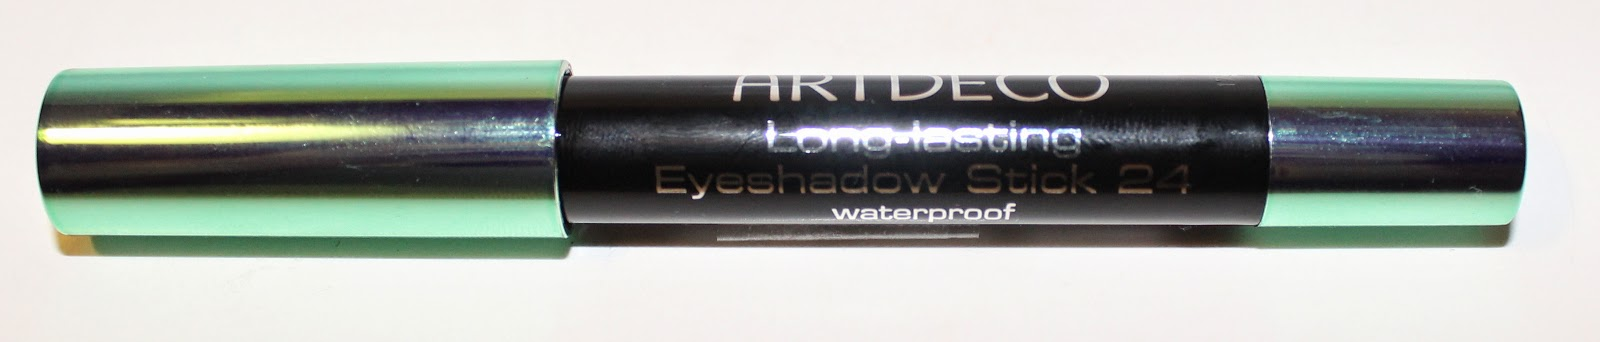 ARTDECO Long-Lasting Eyeshadow Stick in 24 Tropical Monsoon